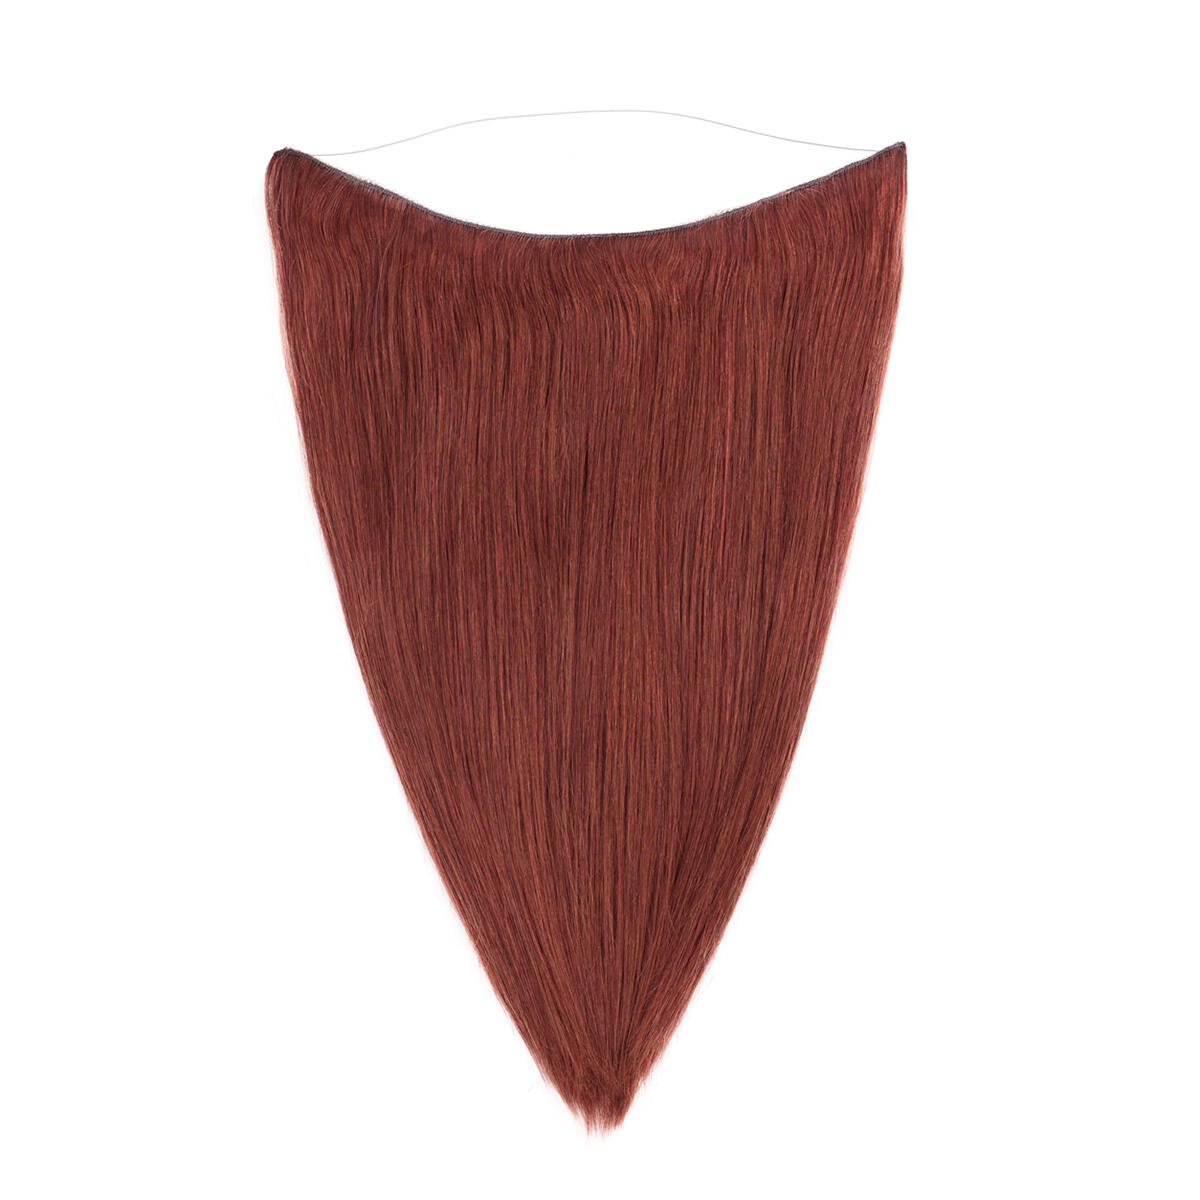 Hairband Original 5.5 Mahogany Brown 45 cm